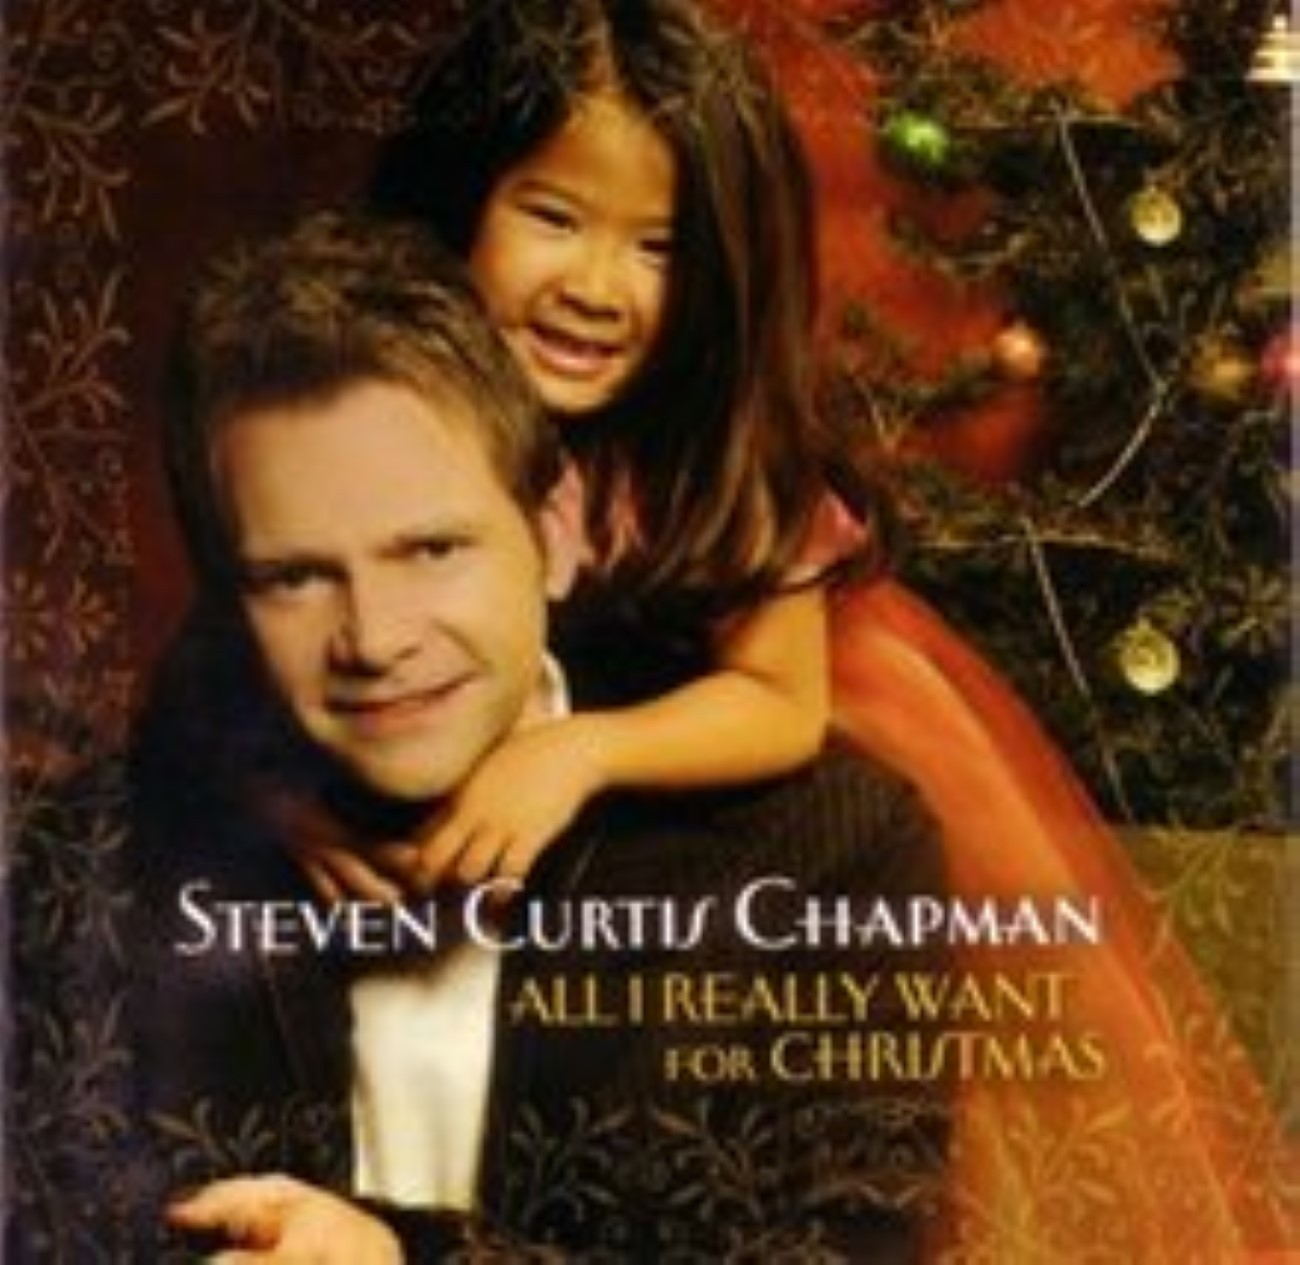 All I Really Want for Christmas by Chapman, Steven Curtis Cd